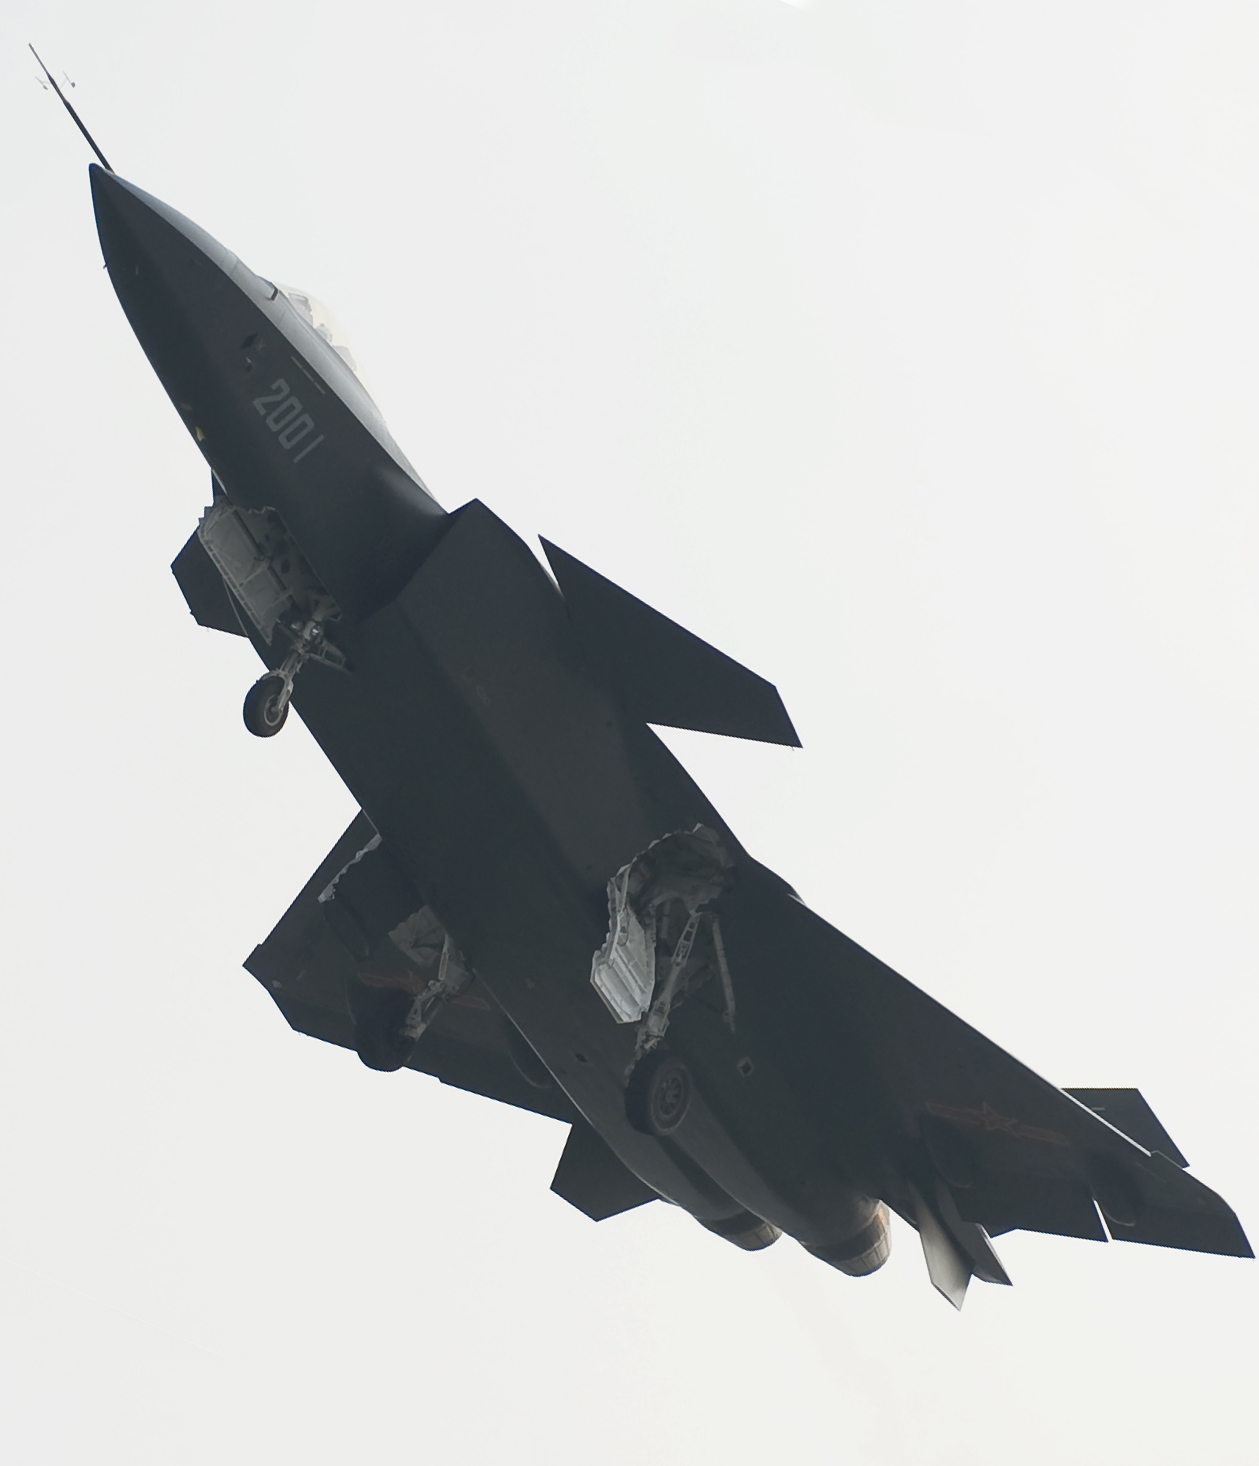 Más detalles del Chengdu J-20 - Página 9 J-20+Mighty+Dragon++Chengdu+prototype++fifth+generation+stealth%252C+twin-engine+fighter+aircraft+prototype+People%2527s+Liberation+Army+Air+Force++OPERATIONAL+weapons+aam+bvr+missile+ls+pgm+gps++plaaf+2012+climb+2nd+3rd+4th+5th+%25284%2529